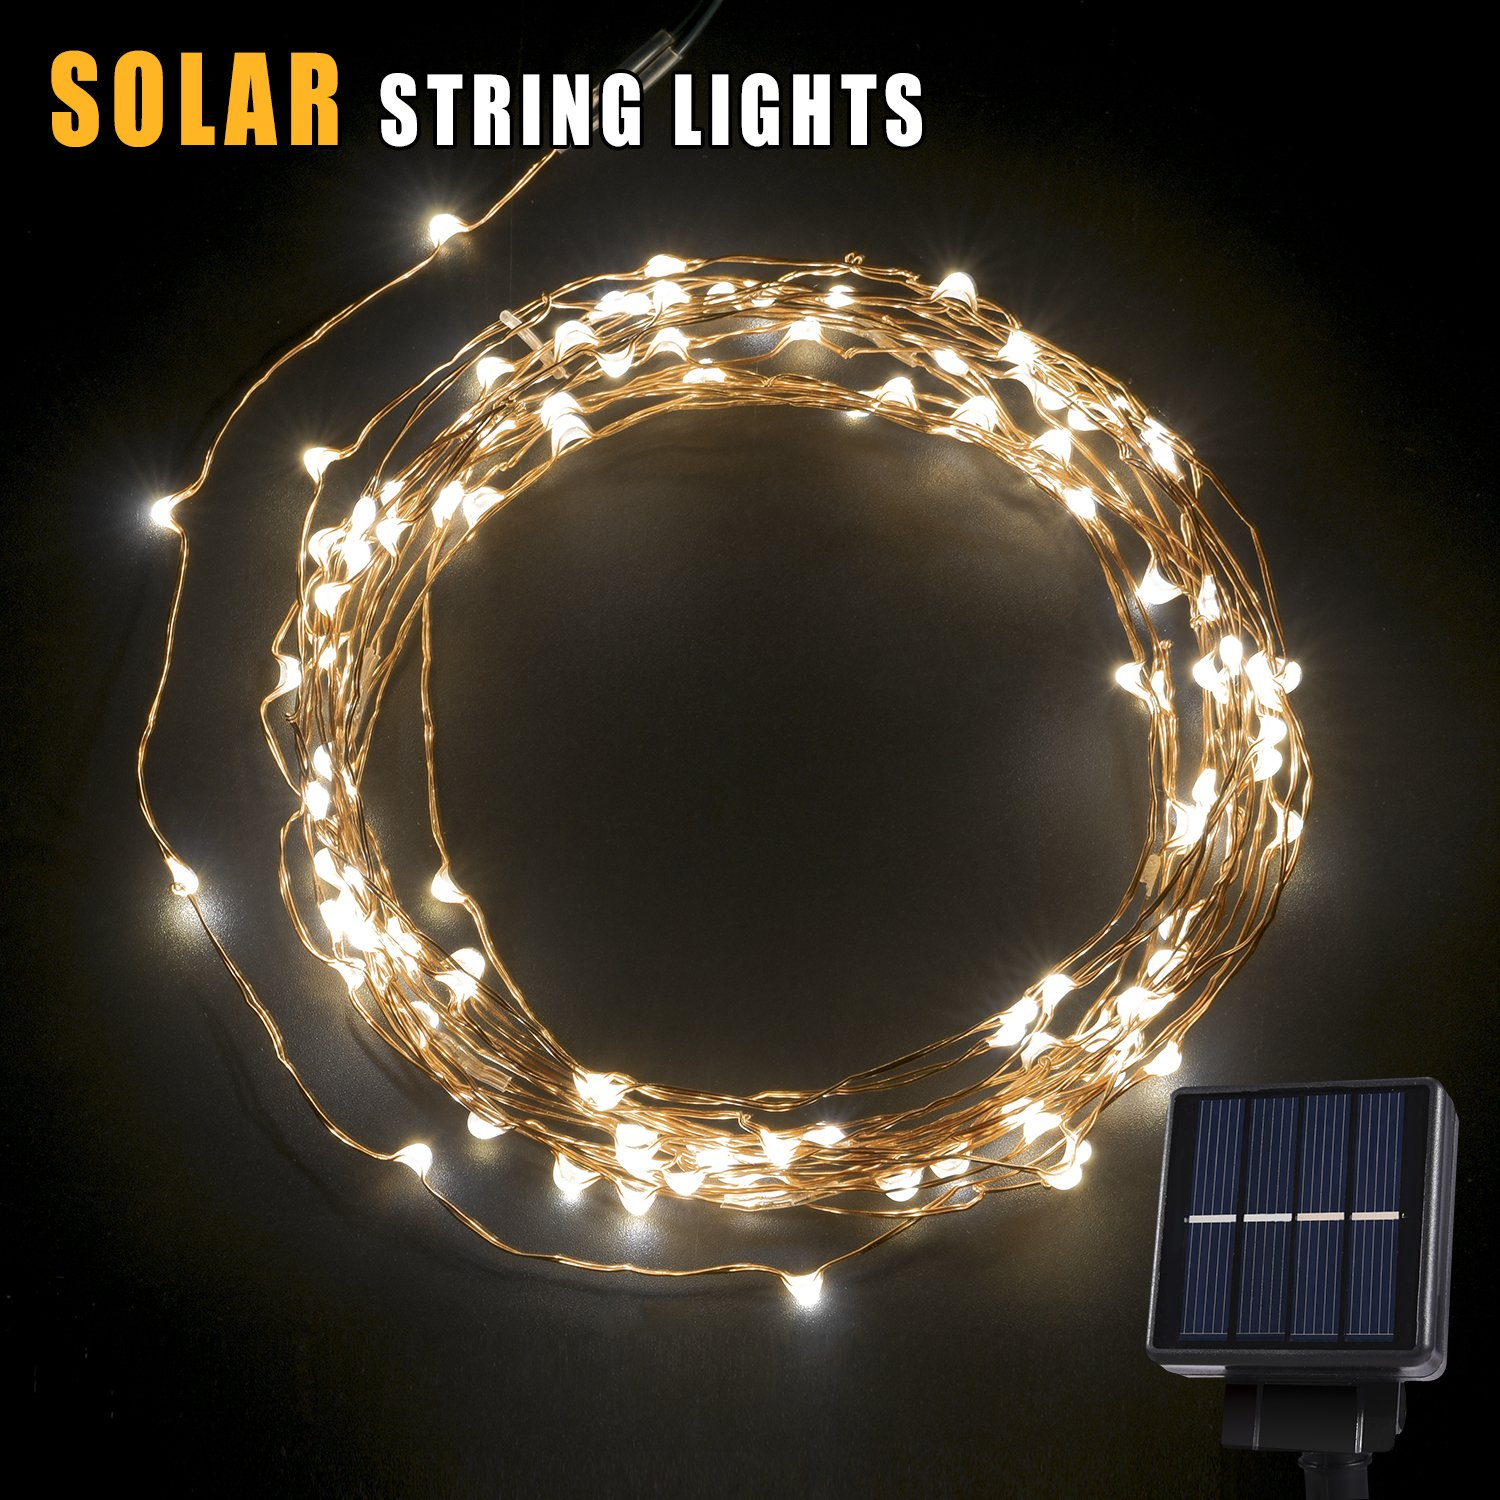 Exterior Solar String Lights : Solar LED String Light 120 LEDs Outdoor Solar Powered LED String Lights Water... eBay